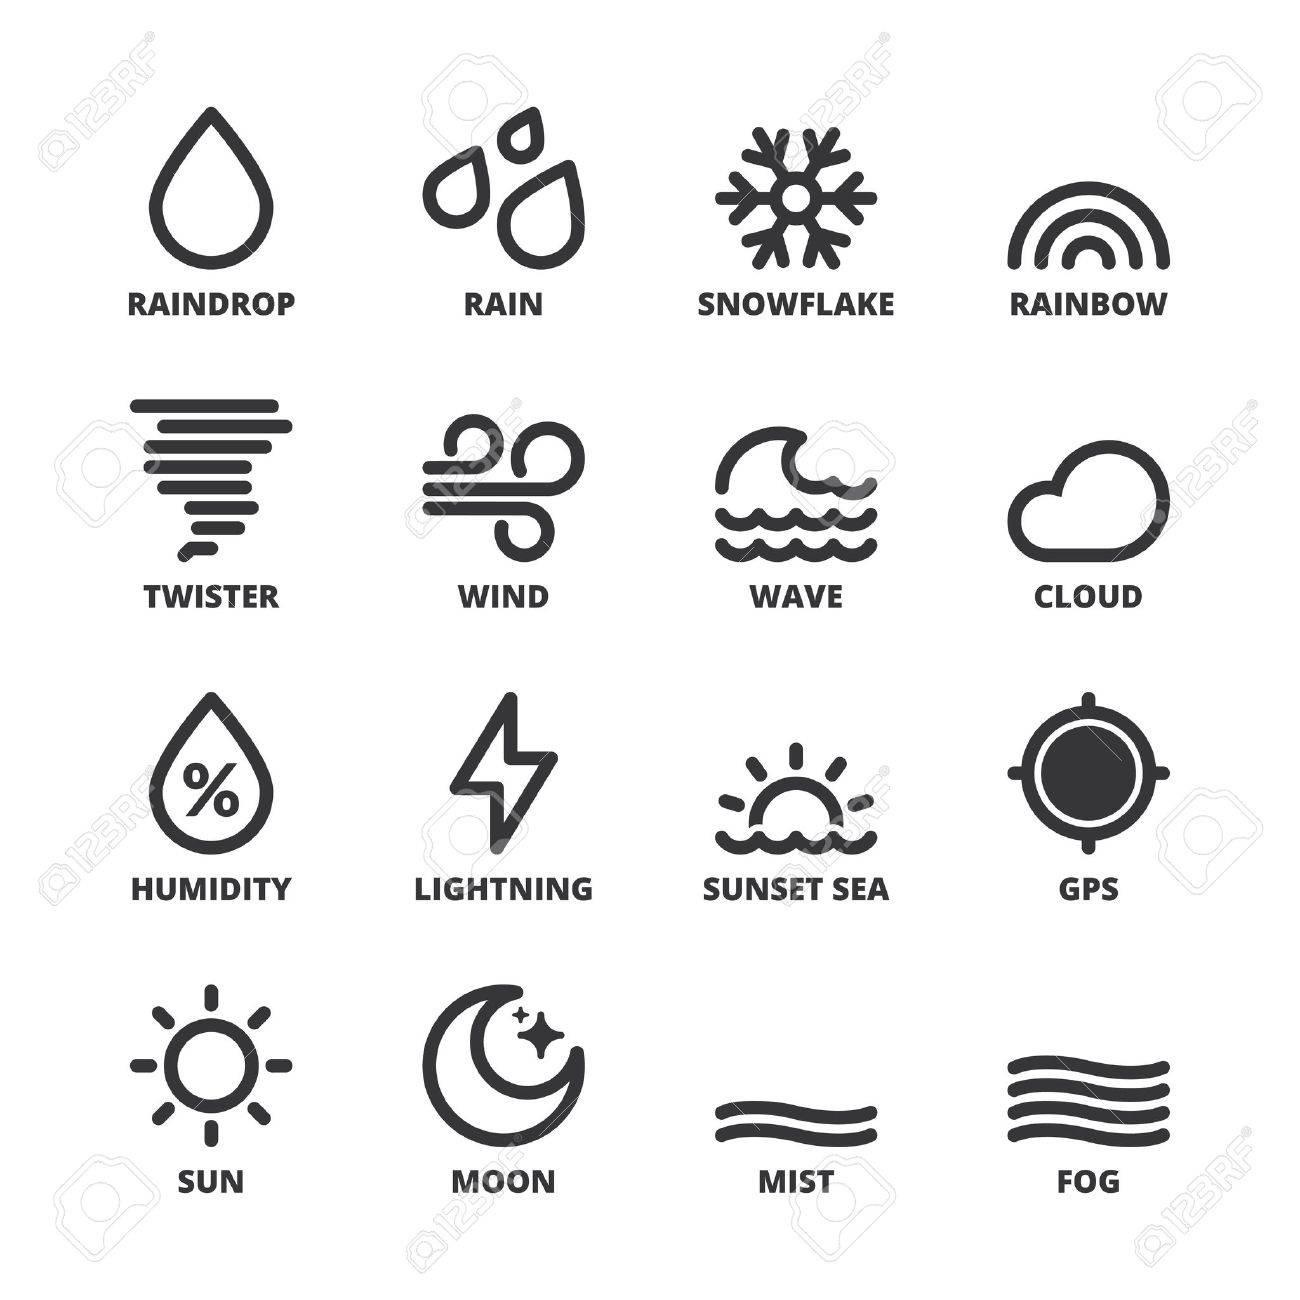 Set Of Black Flat Symbols About The Weather Forecast Symbols